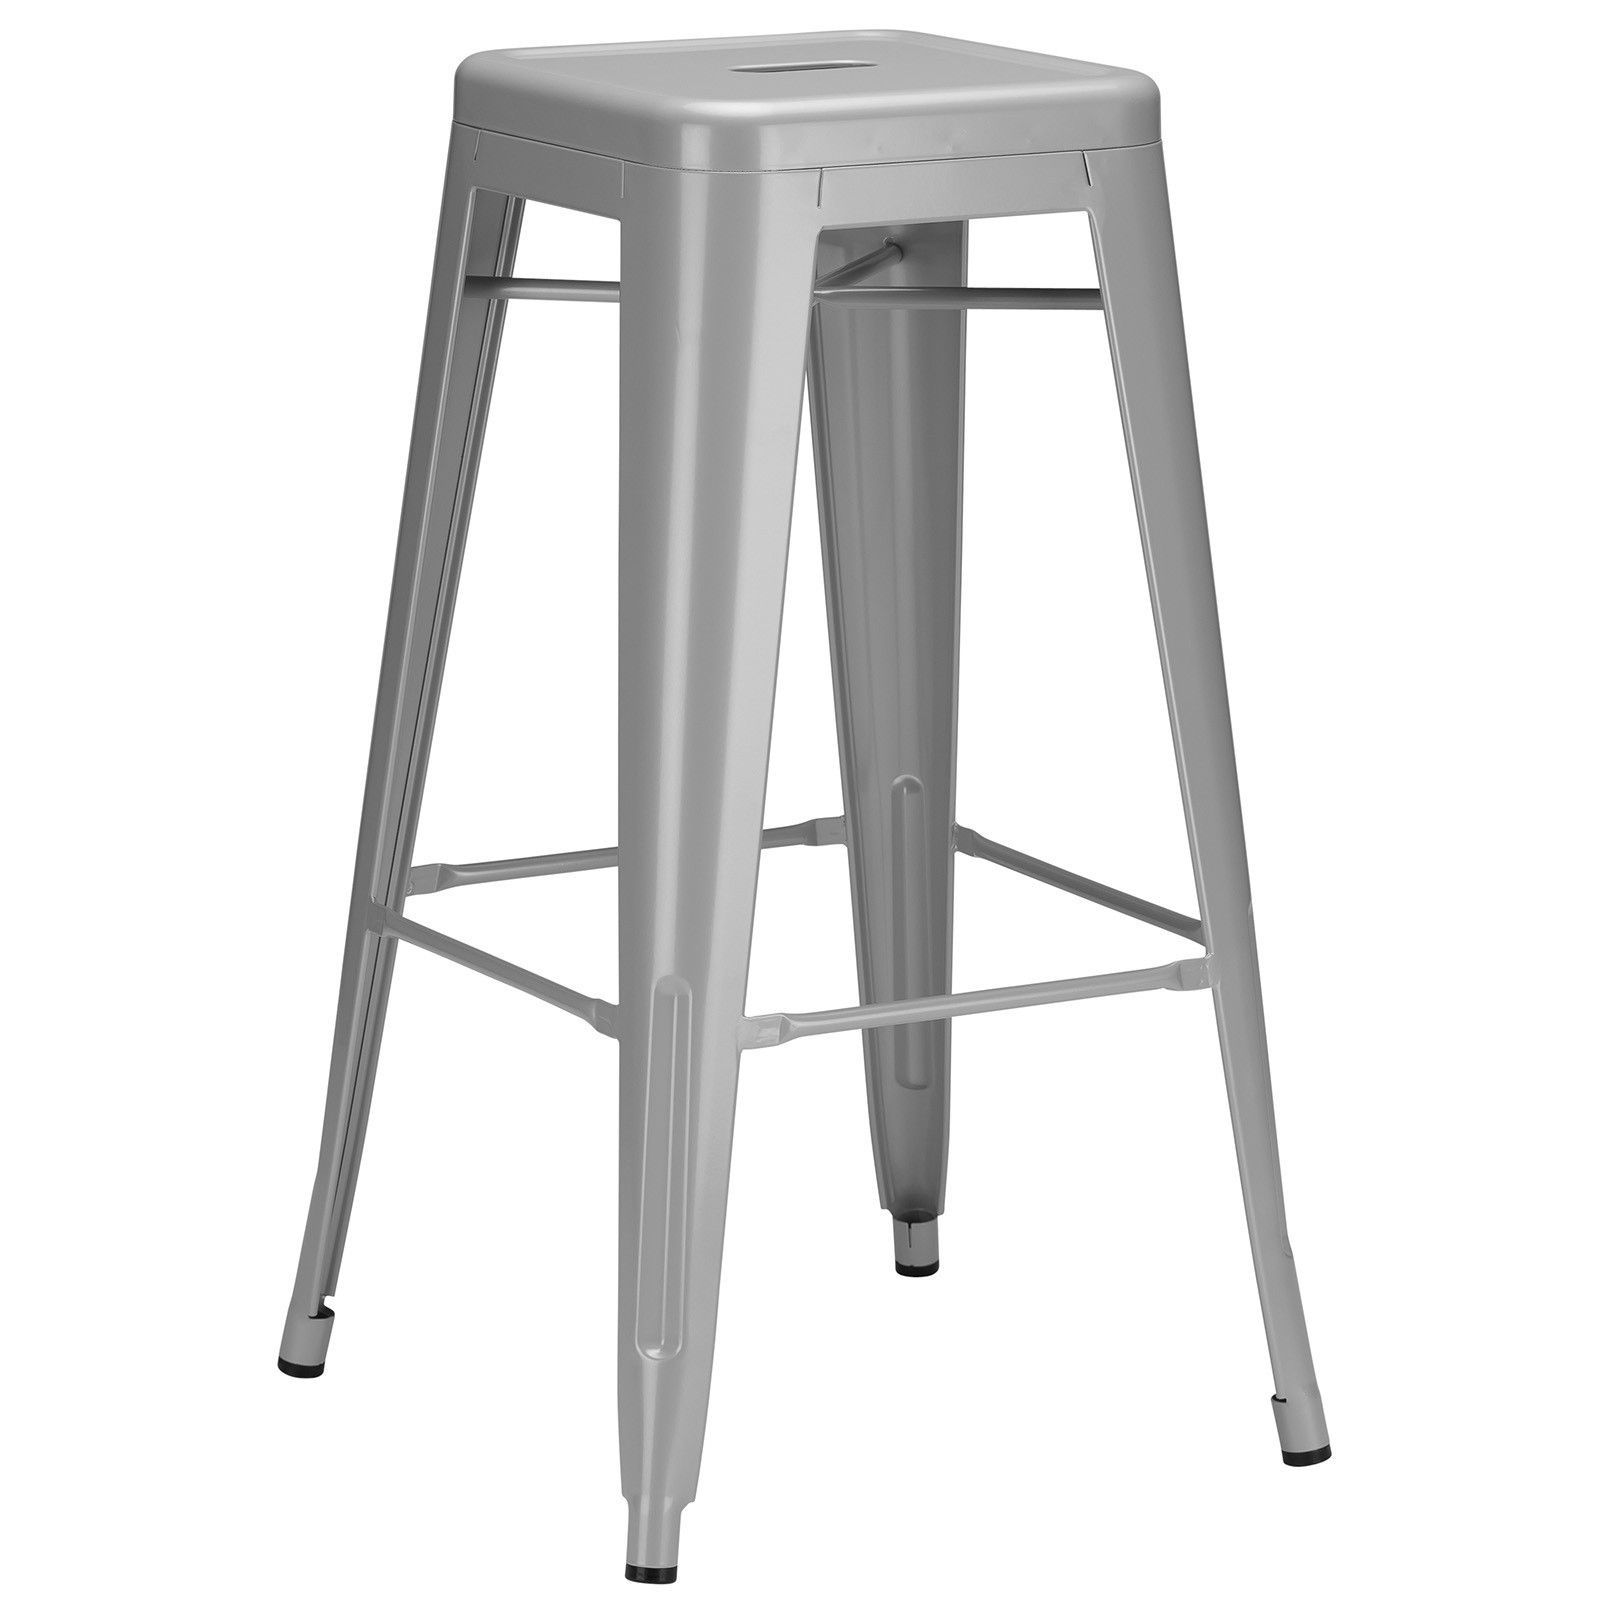 Talix Style Bar Stool In Grey Ej Industrial Bar Stool